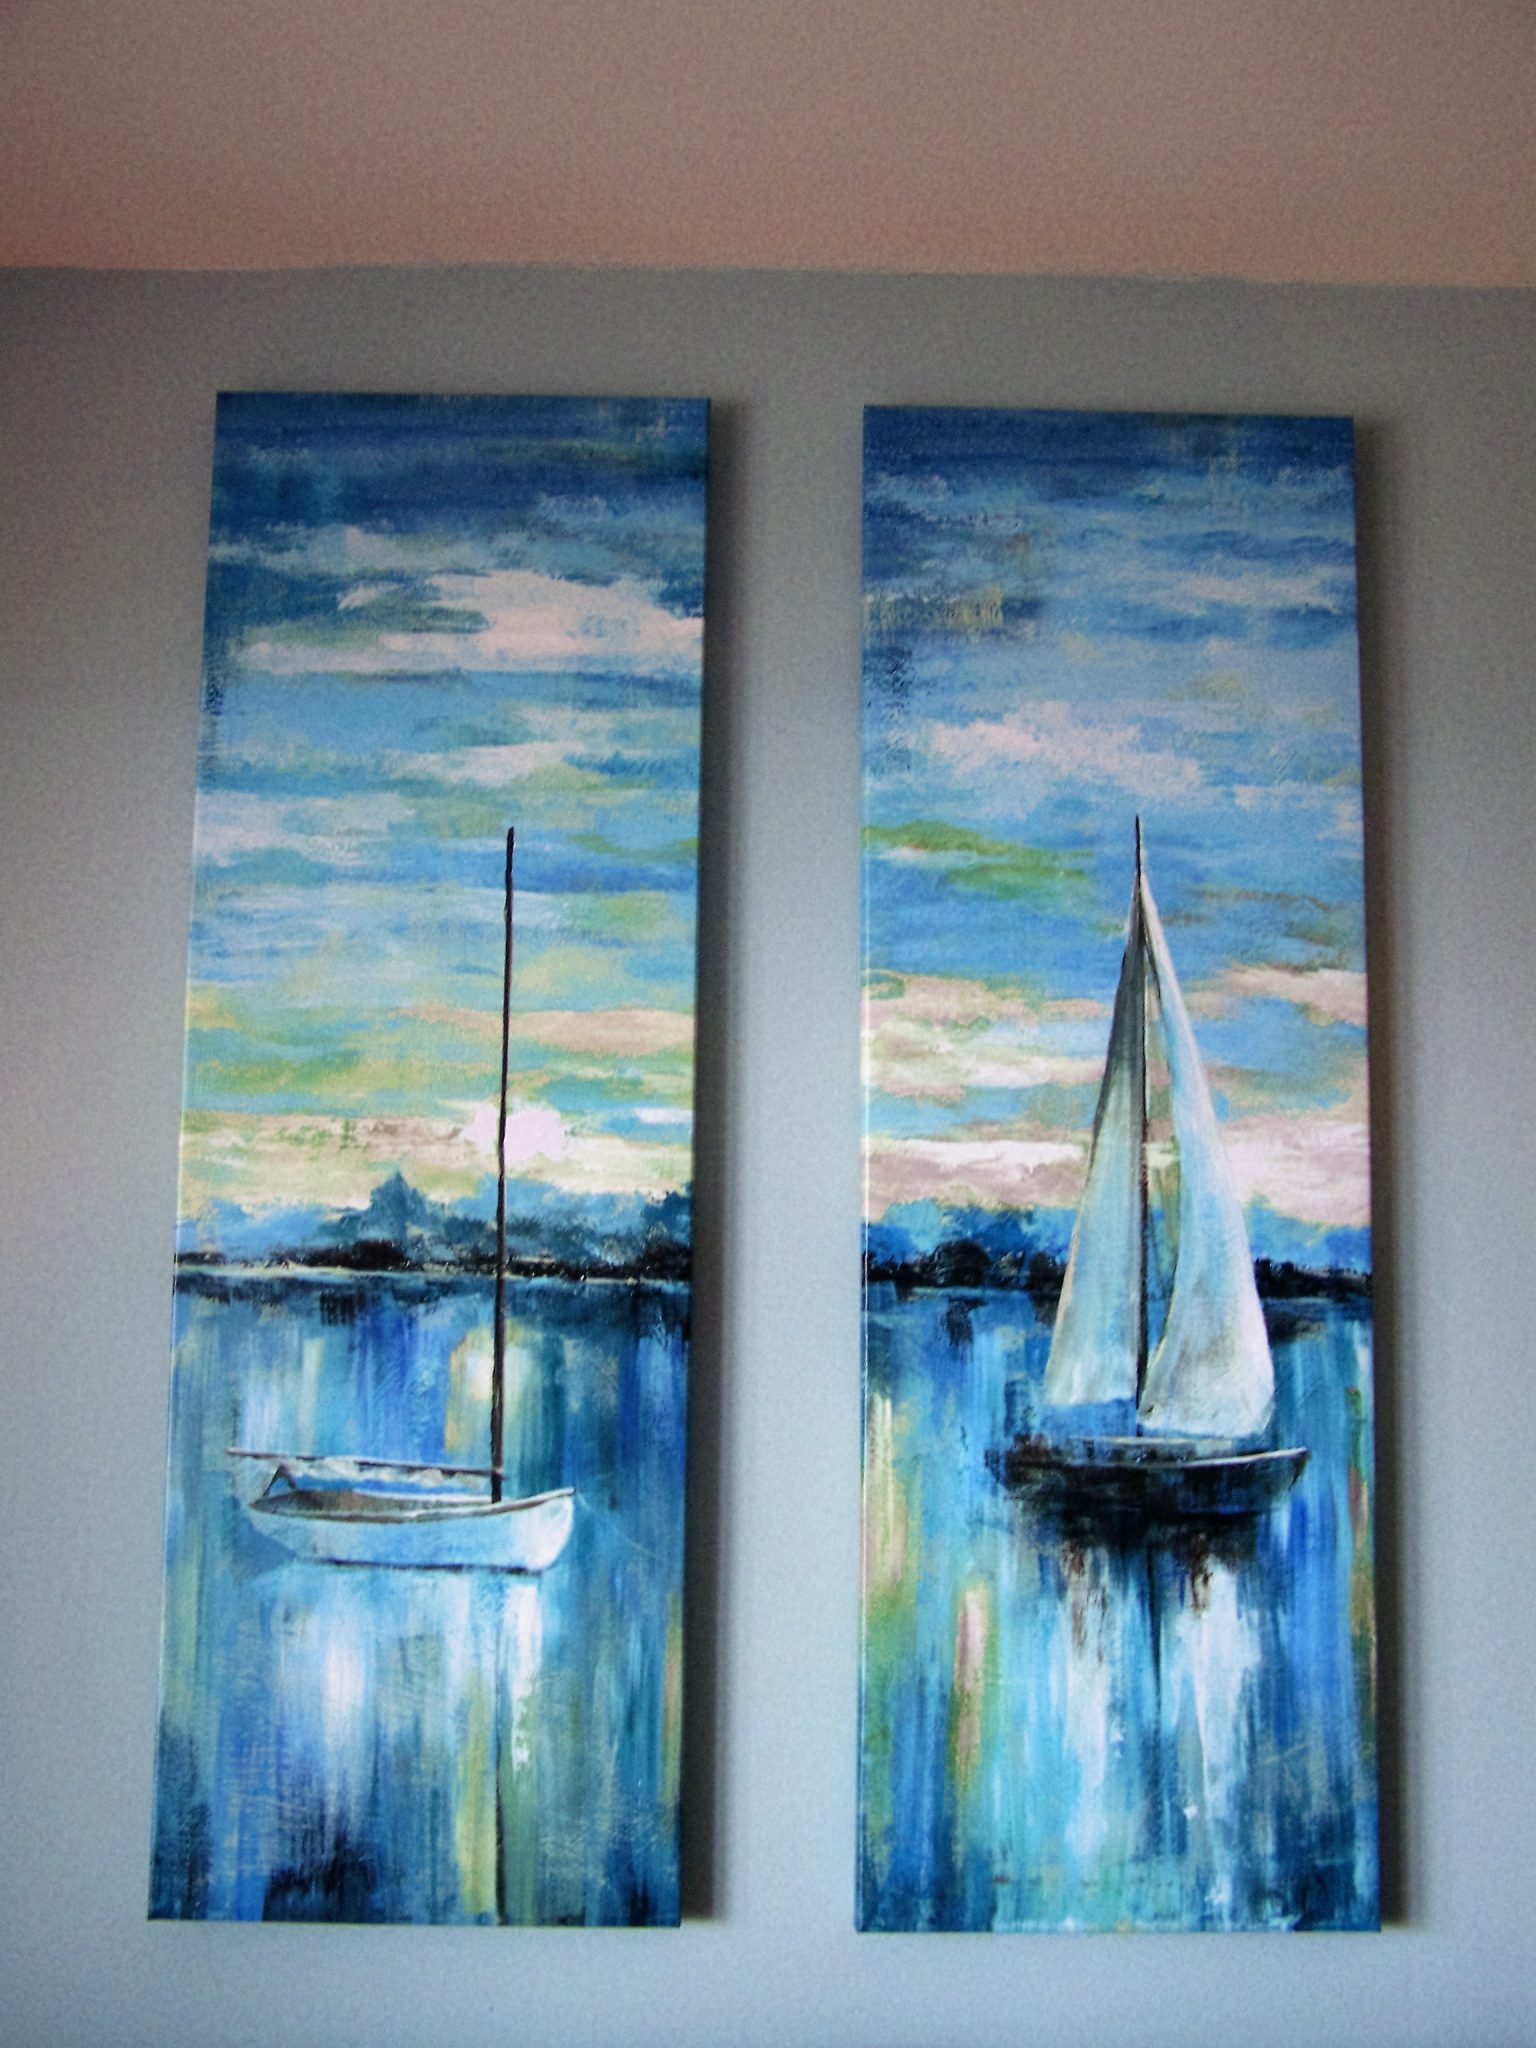 Fishing Boat Artwork | Furniture Accessories Supplier in Panama, FL.